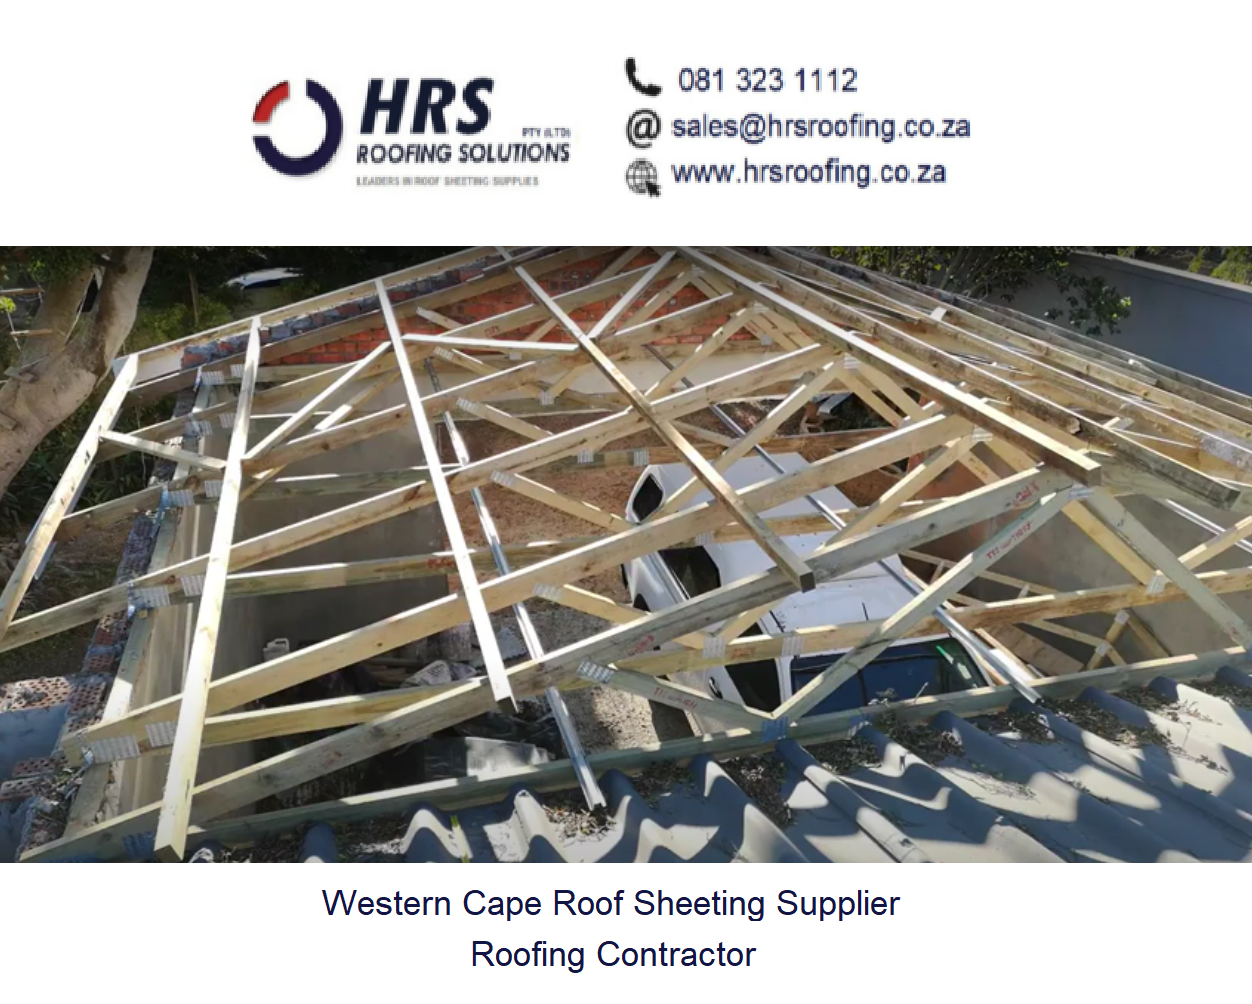 IBR or Corrugated Zincalume or Colorbond roof sheeting supplier deliverirs in Vredendal table view bellville durbanville stellenbosch2 springlok 700 roofing contracot 1 - Roofing Gallery